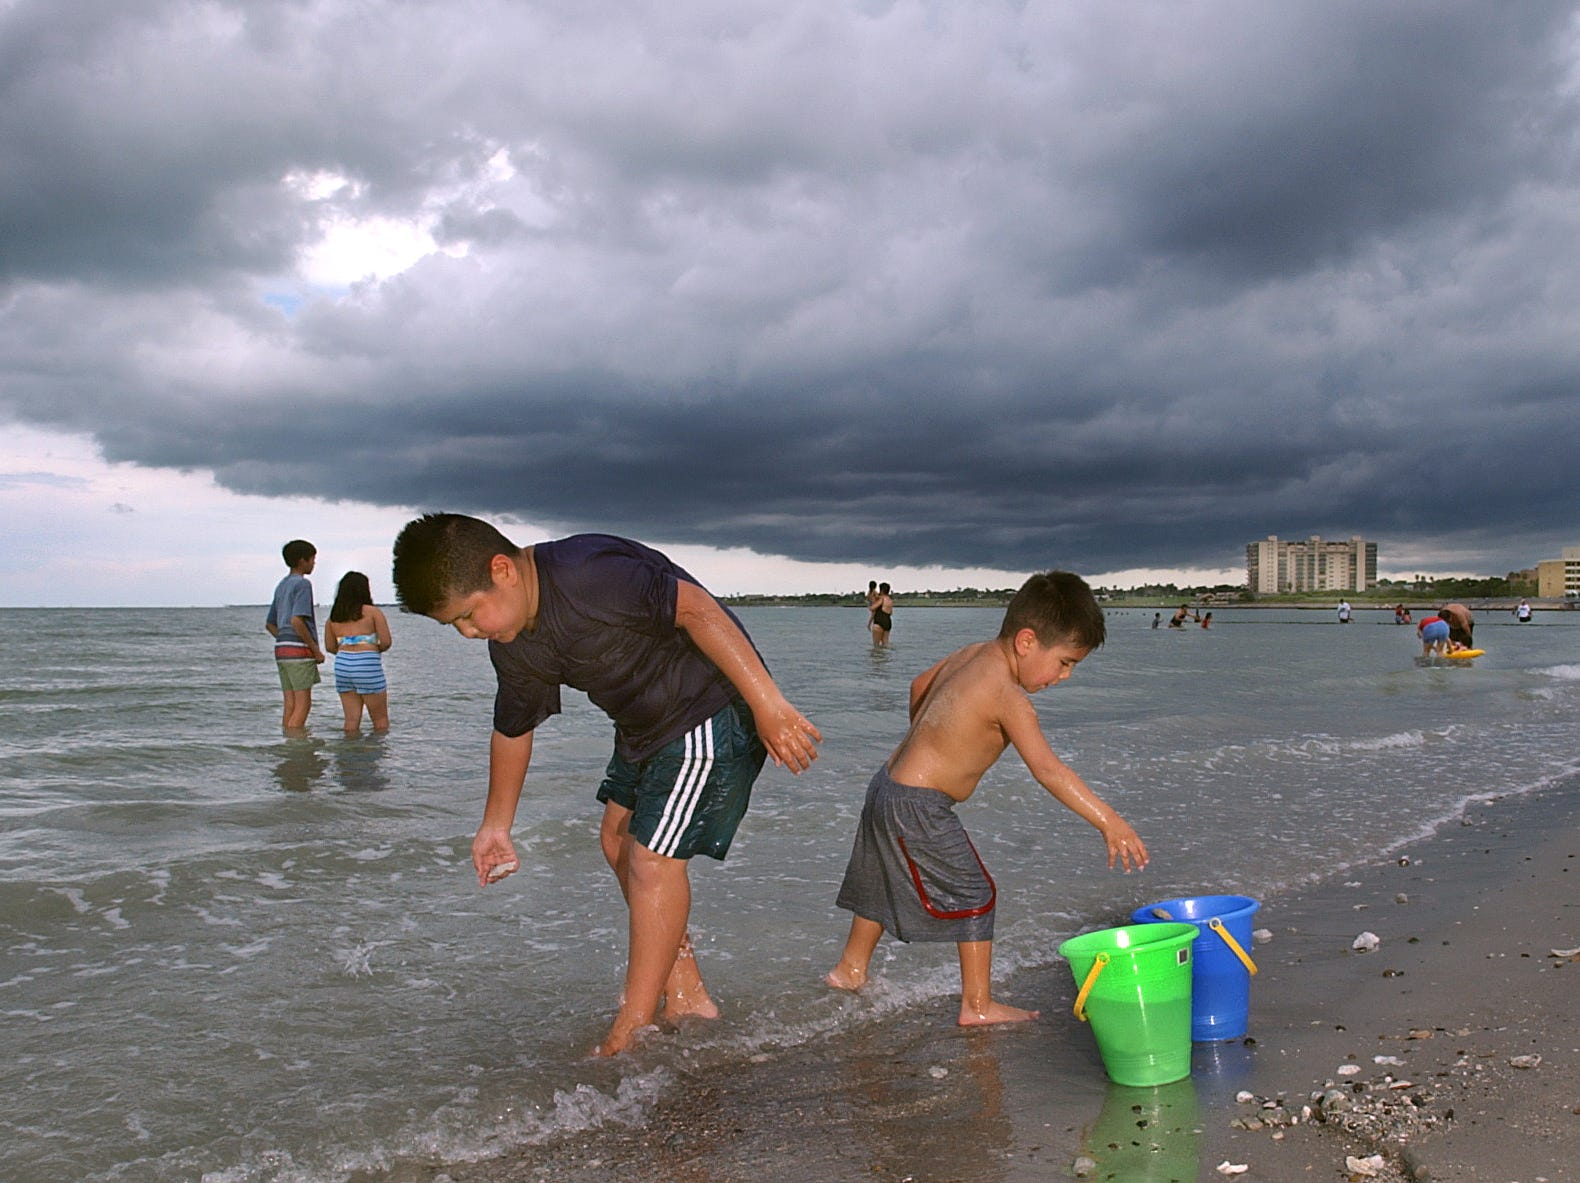 Brothers Horacio Alaniz (left) and Brandon Alaniz (right) collect shells on the new beach at McGee Beach oin downtown Corpus Christi as dark storm clouds move over the bayfront Monday, Sept. 1, 2003.